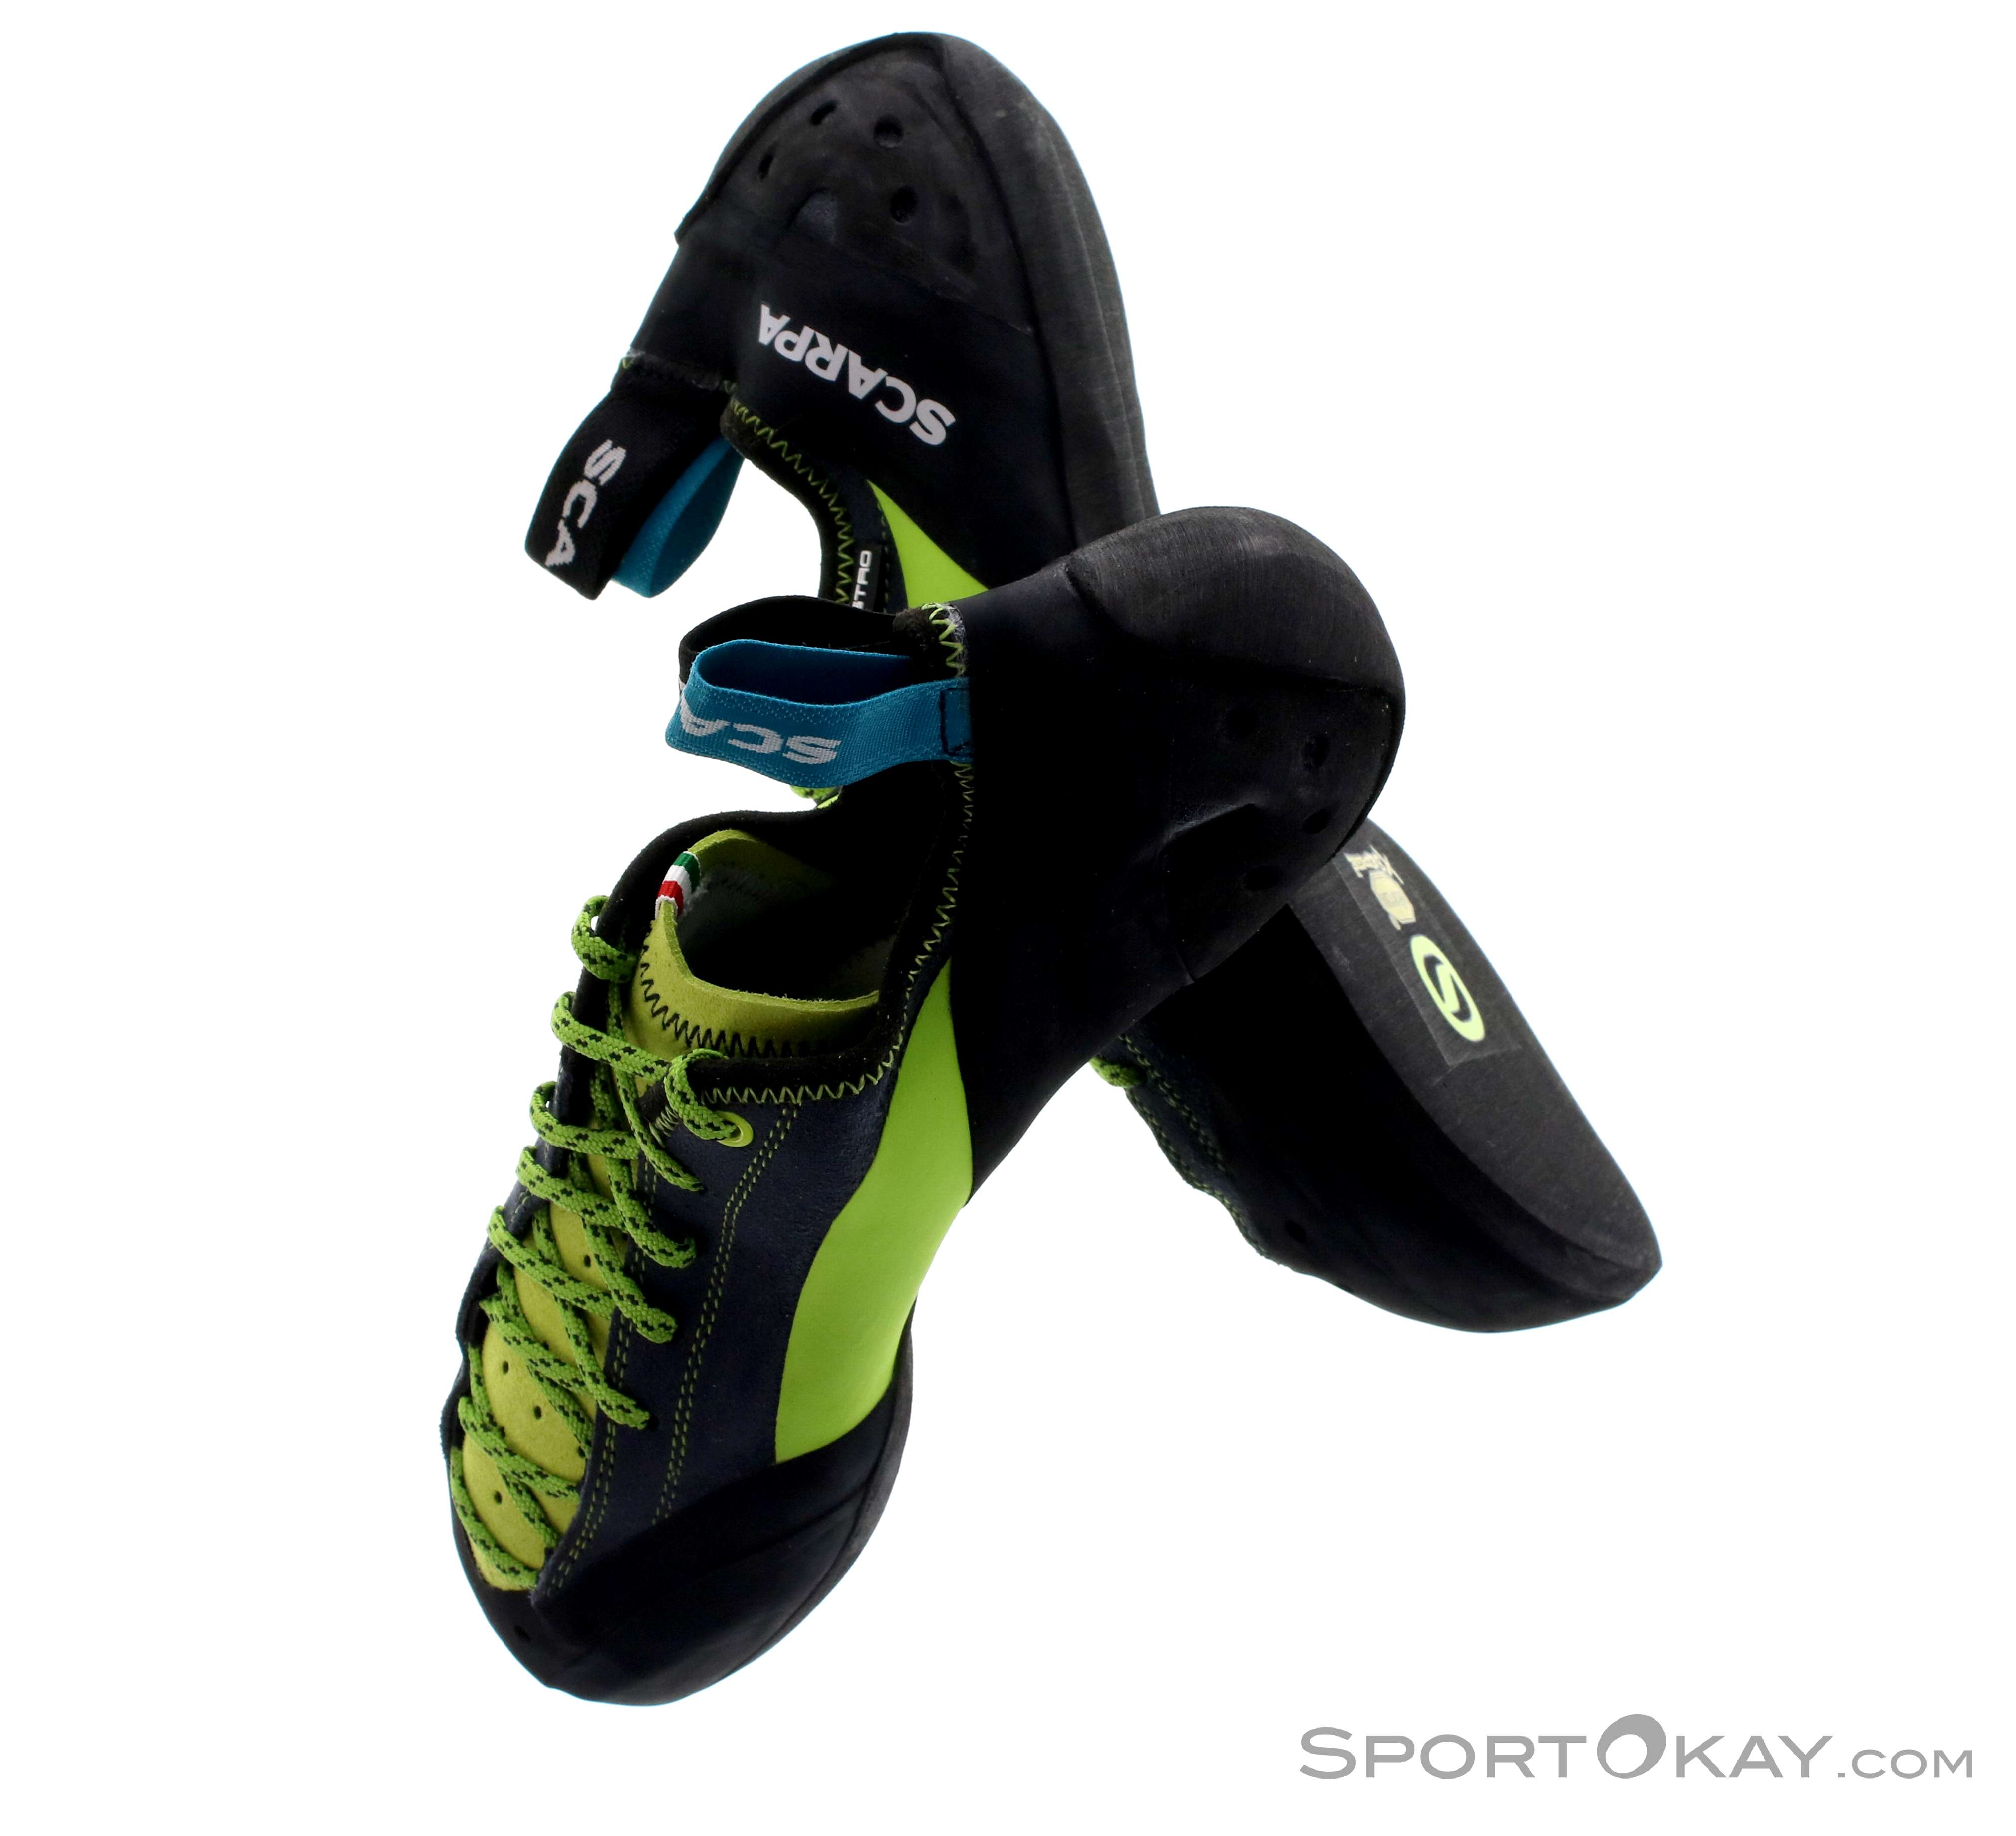 38187d3129f4 Scarpa Maestro S Mens Climbing Shoes - Lace-Up Shoes - Climbing ...